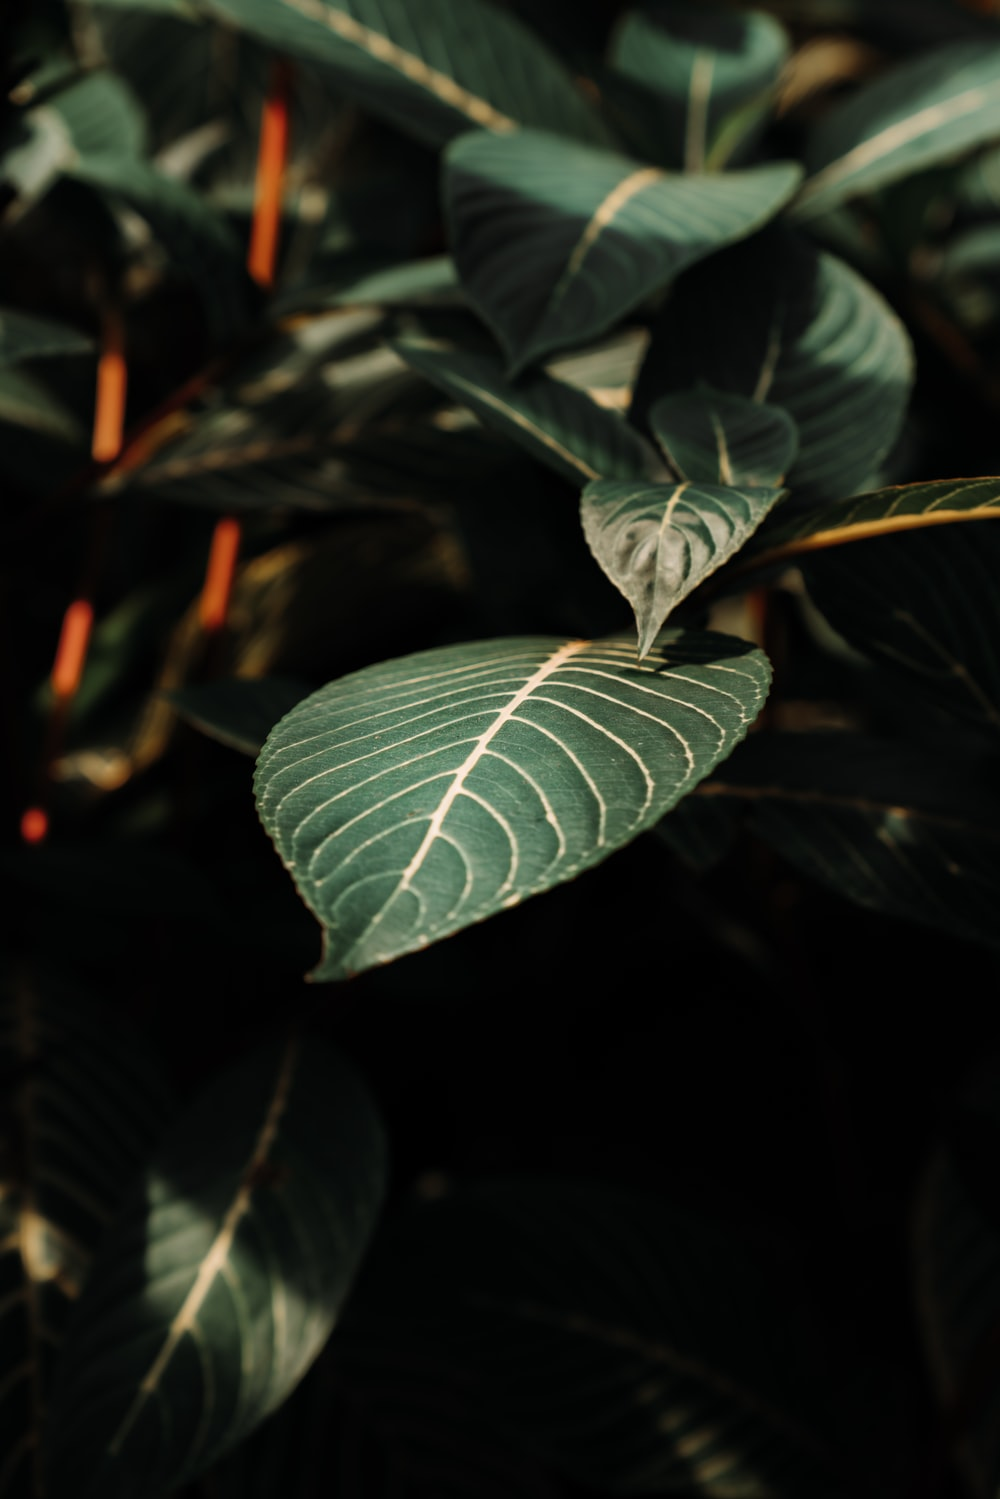 close-up photography of green-leafled plant